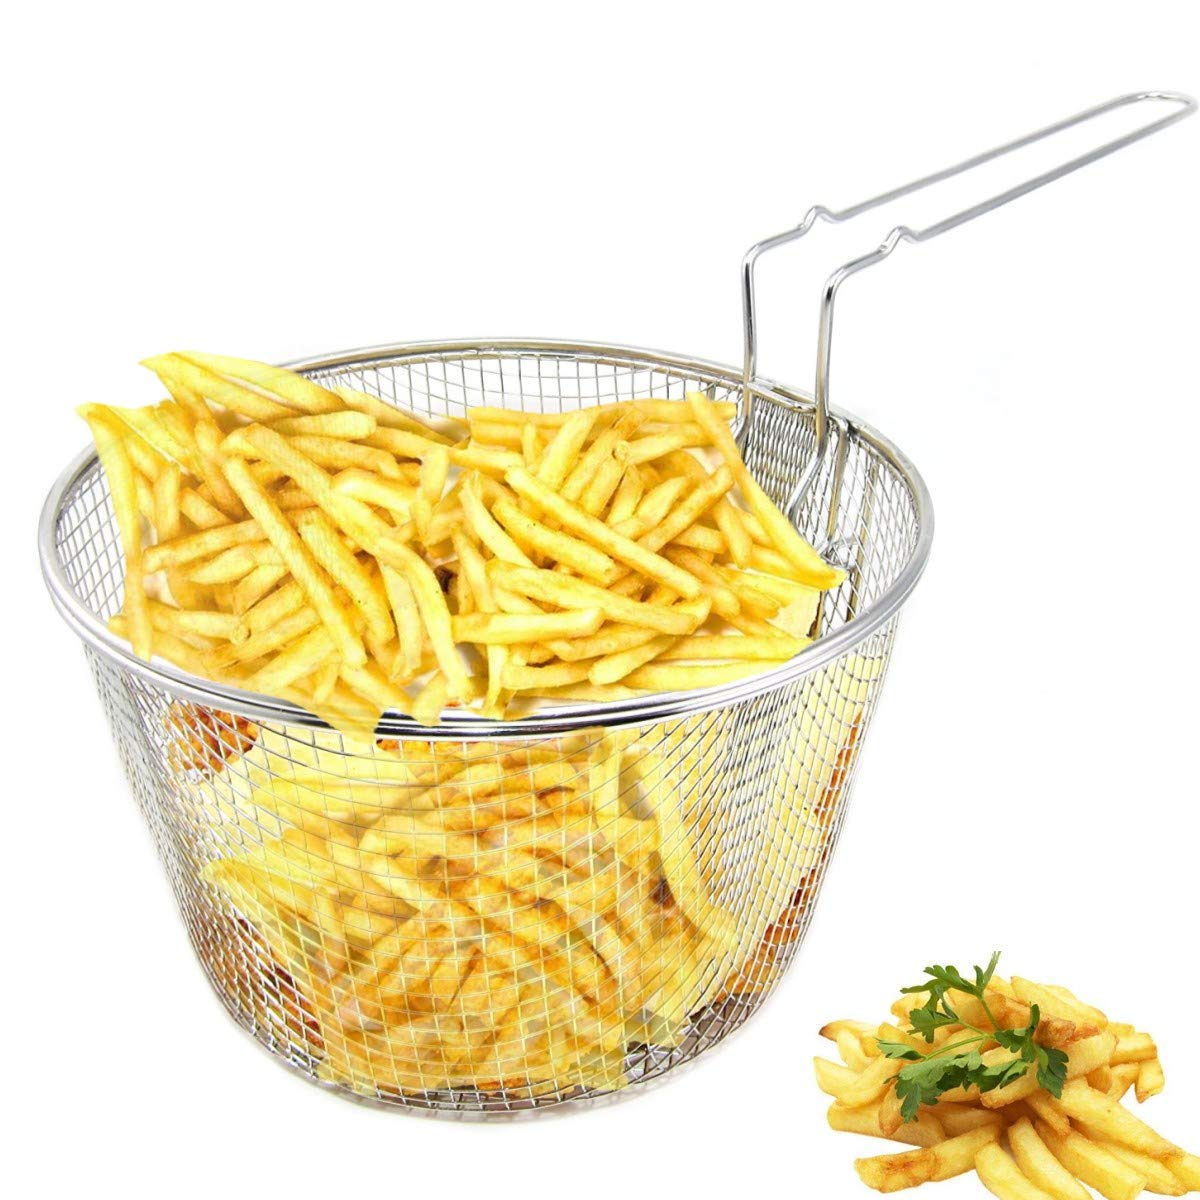 9'' Medium Stainless Steel Deep Fry Basket Round Wire Mesh French Chip Frying Serving Food Presentation Tableware With Detachable Handle Fit For Up To 5/6L Pot